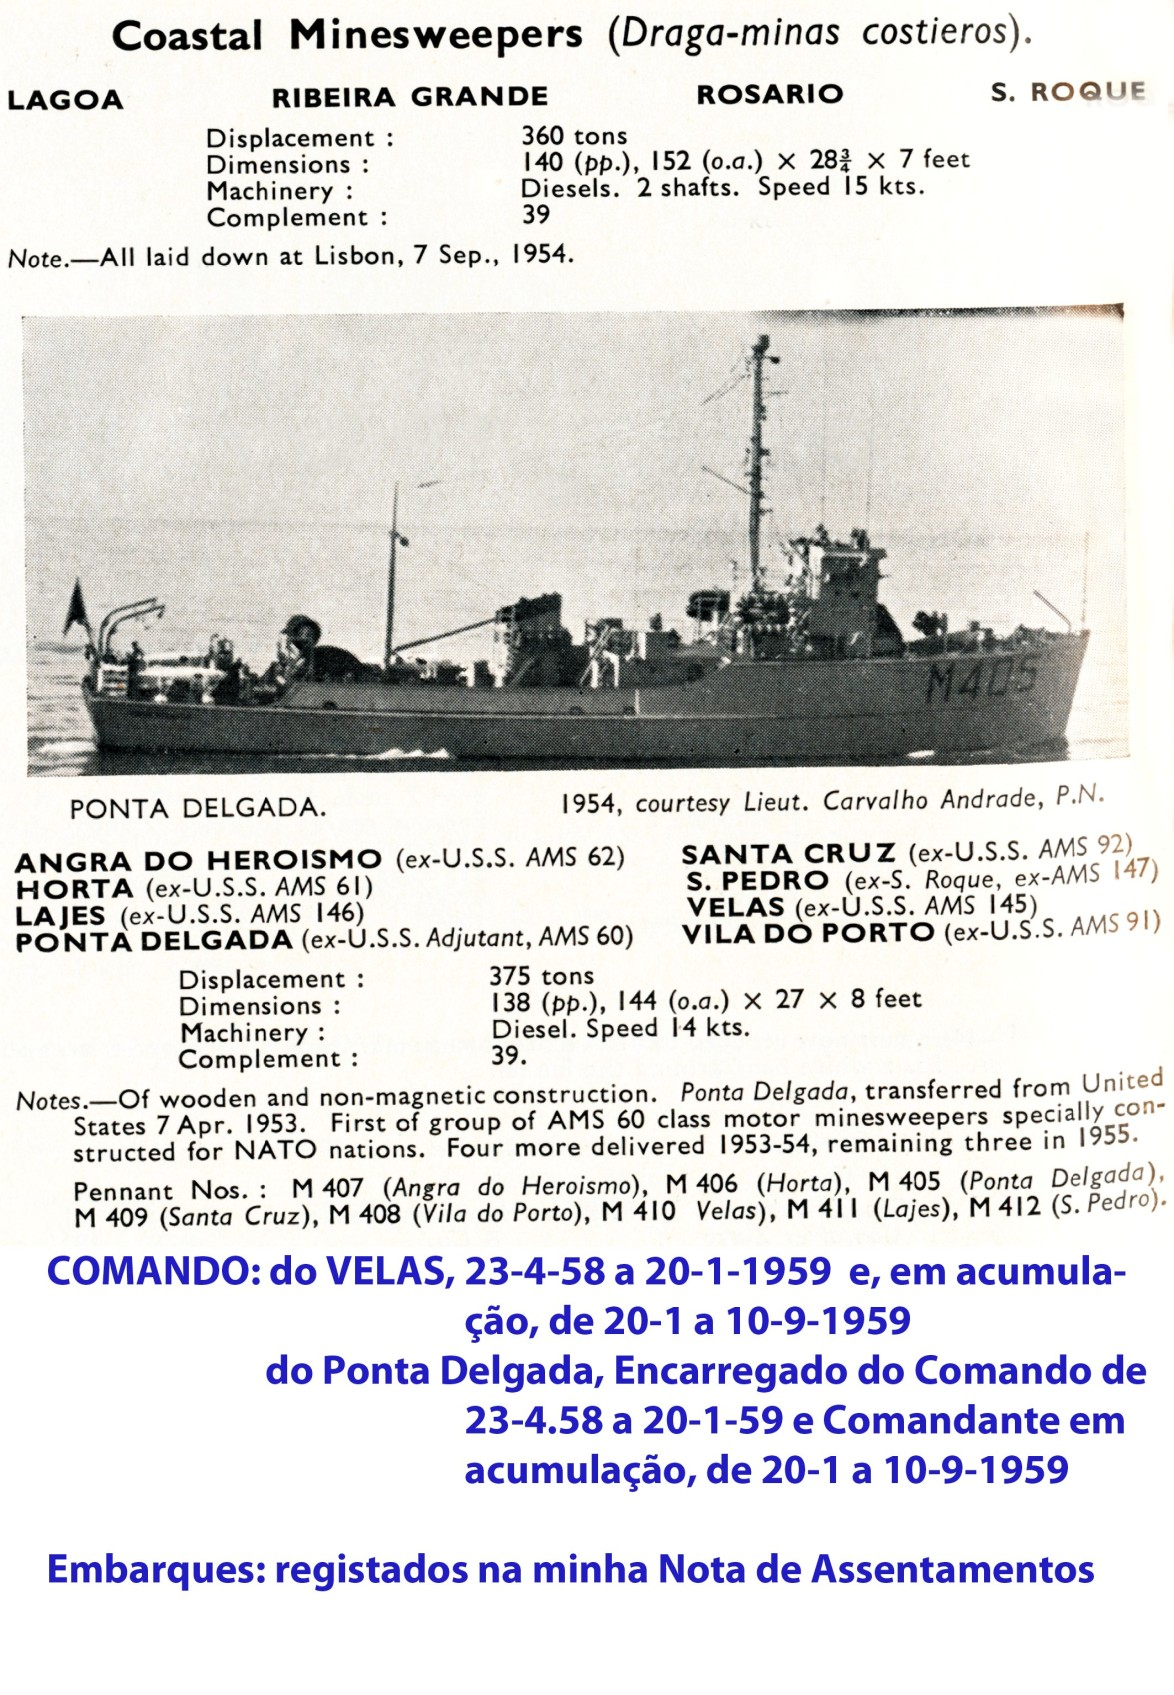 00367 Draga-Minas Costeiros classe Ponta Delgada - Jane's Fighting Ships 1956-57